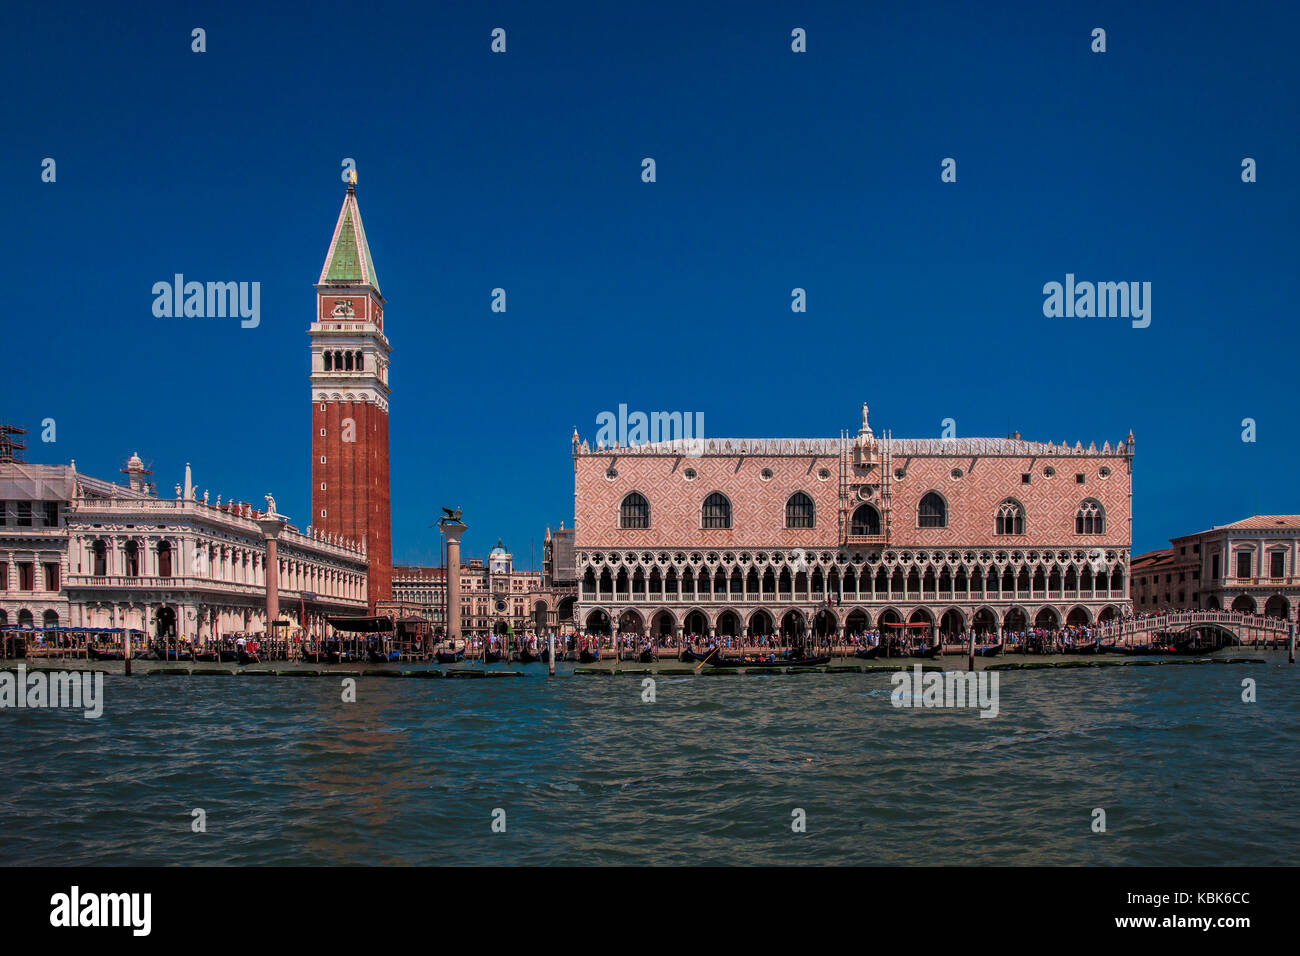 The Doges Palace and the Campanile, landmarks of Venice, Italy - Stock Image